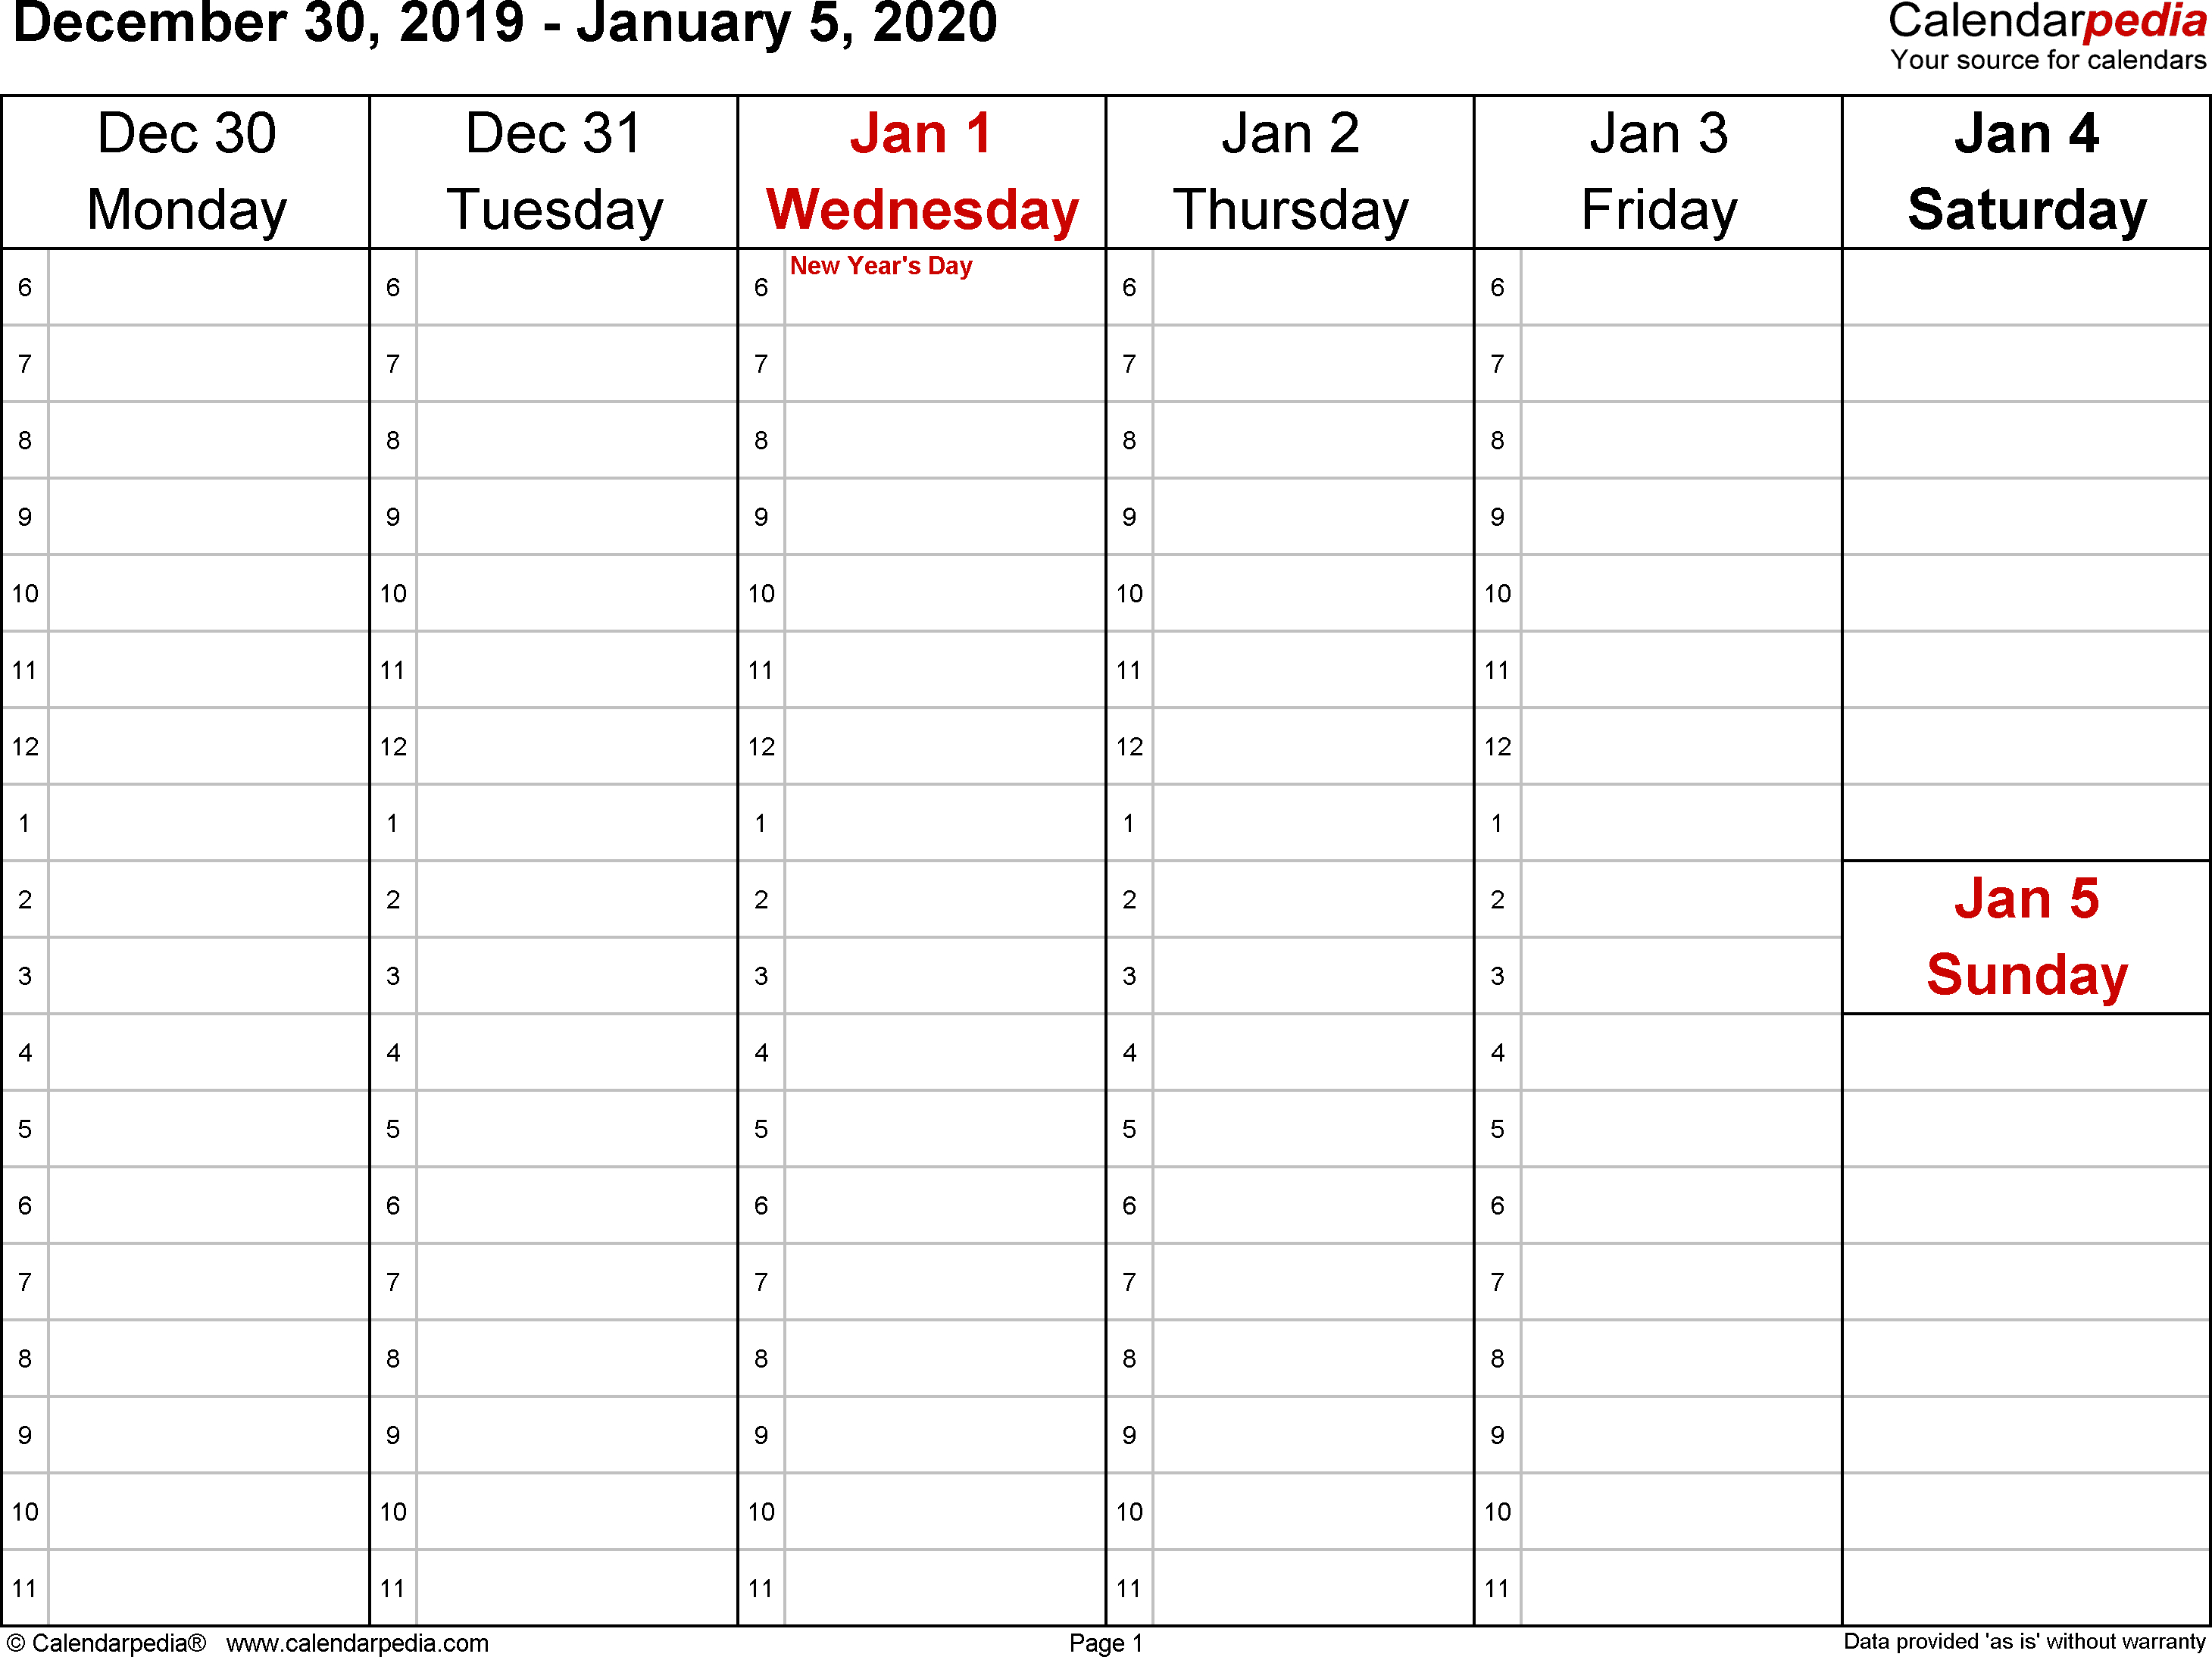 Weekly Calendar 2020 For Excel - 12 Free Printable Templates intended for 2020 Calendar Sunday To Saturday